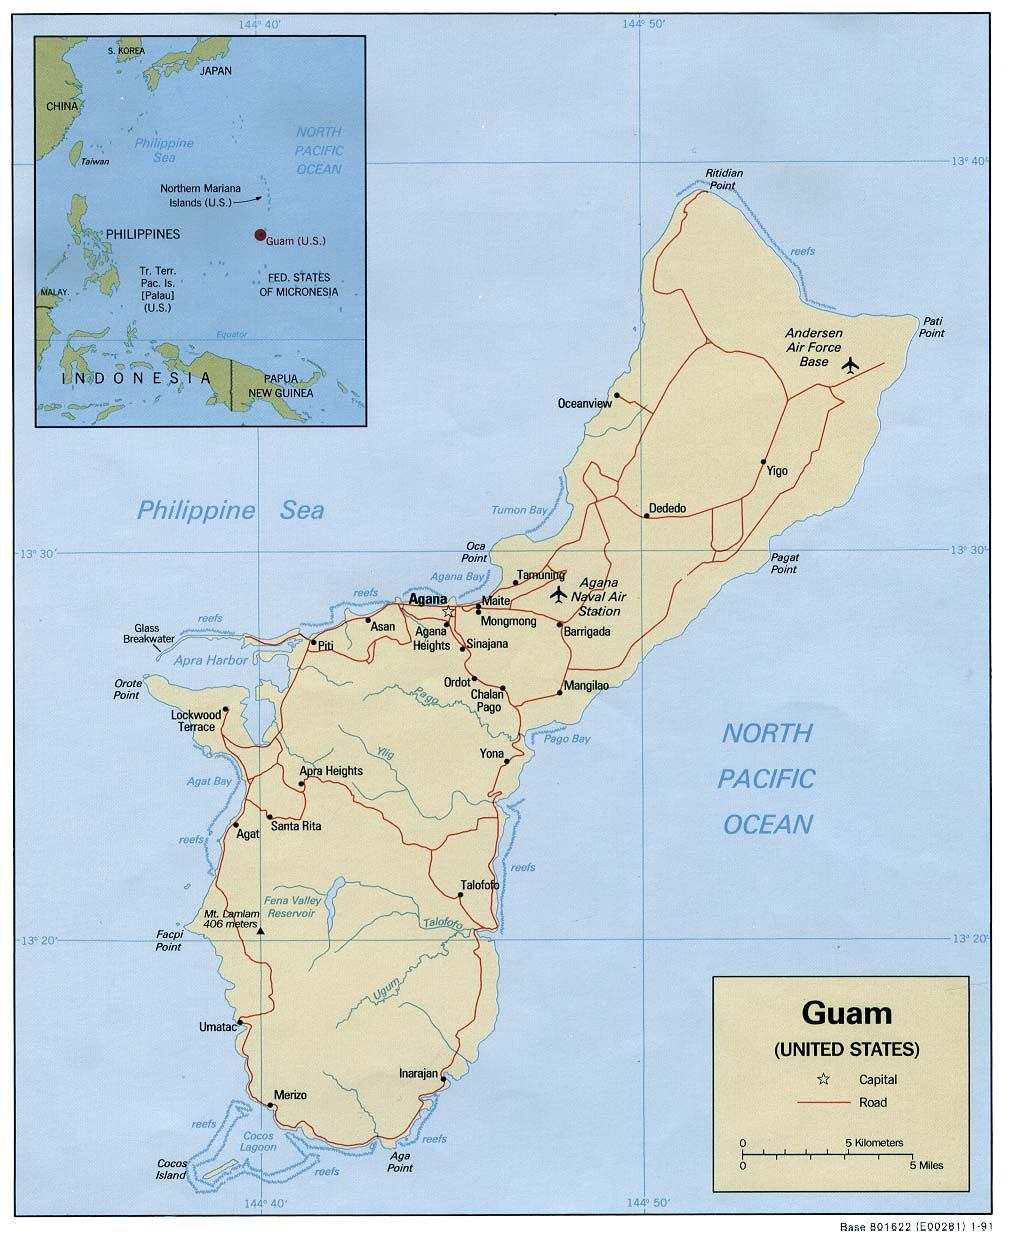 Map of Guåhan - Guam (Political), 1991. Courtesy of, The World Factbook (http://cia.gov/cia/publications/factbook) or CIA Maps and Publications Released to the Public (http://www.cia.gov/cia/publications/mapspub), Central Intelligence Agency (CIA), Government of the United States of America (USA); and the Perry-Castañeda Map Collection (http://www.lib.utexas.edu/maps), Perry-Castañeda Library, The General Libraries, University of Texas at Austin, Austin, Texas, USA.